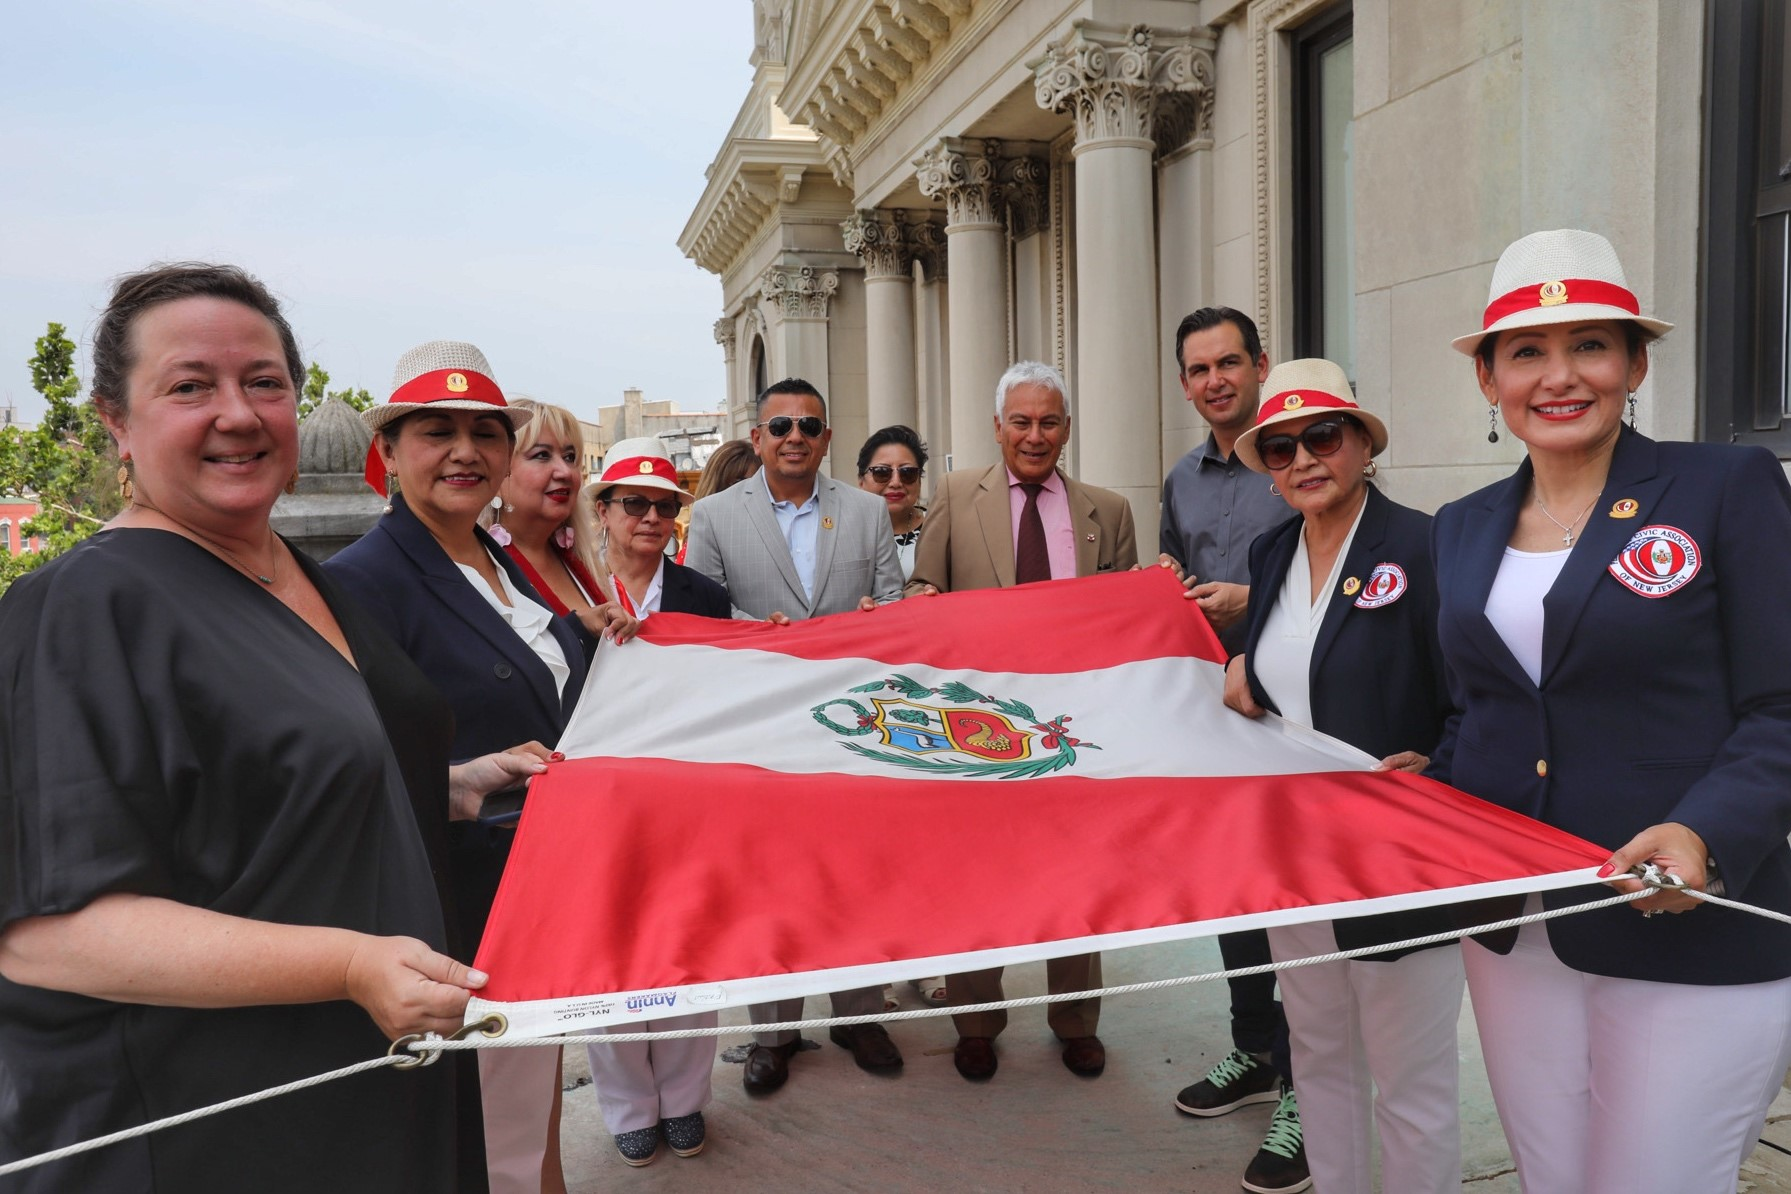 A group of people holding the flag before it is raised. the Peruvian flag The permanent national flag is of a vertical triband design, with red outer bands and a single white middle band. The color red represents blood shed for independence. White symbolizes purity and peace. The colors are believed to symbolize the lasting impact the Incas have had in the country.